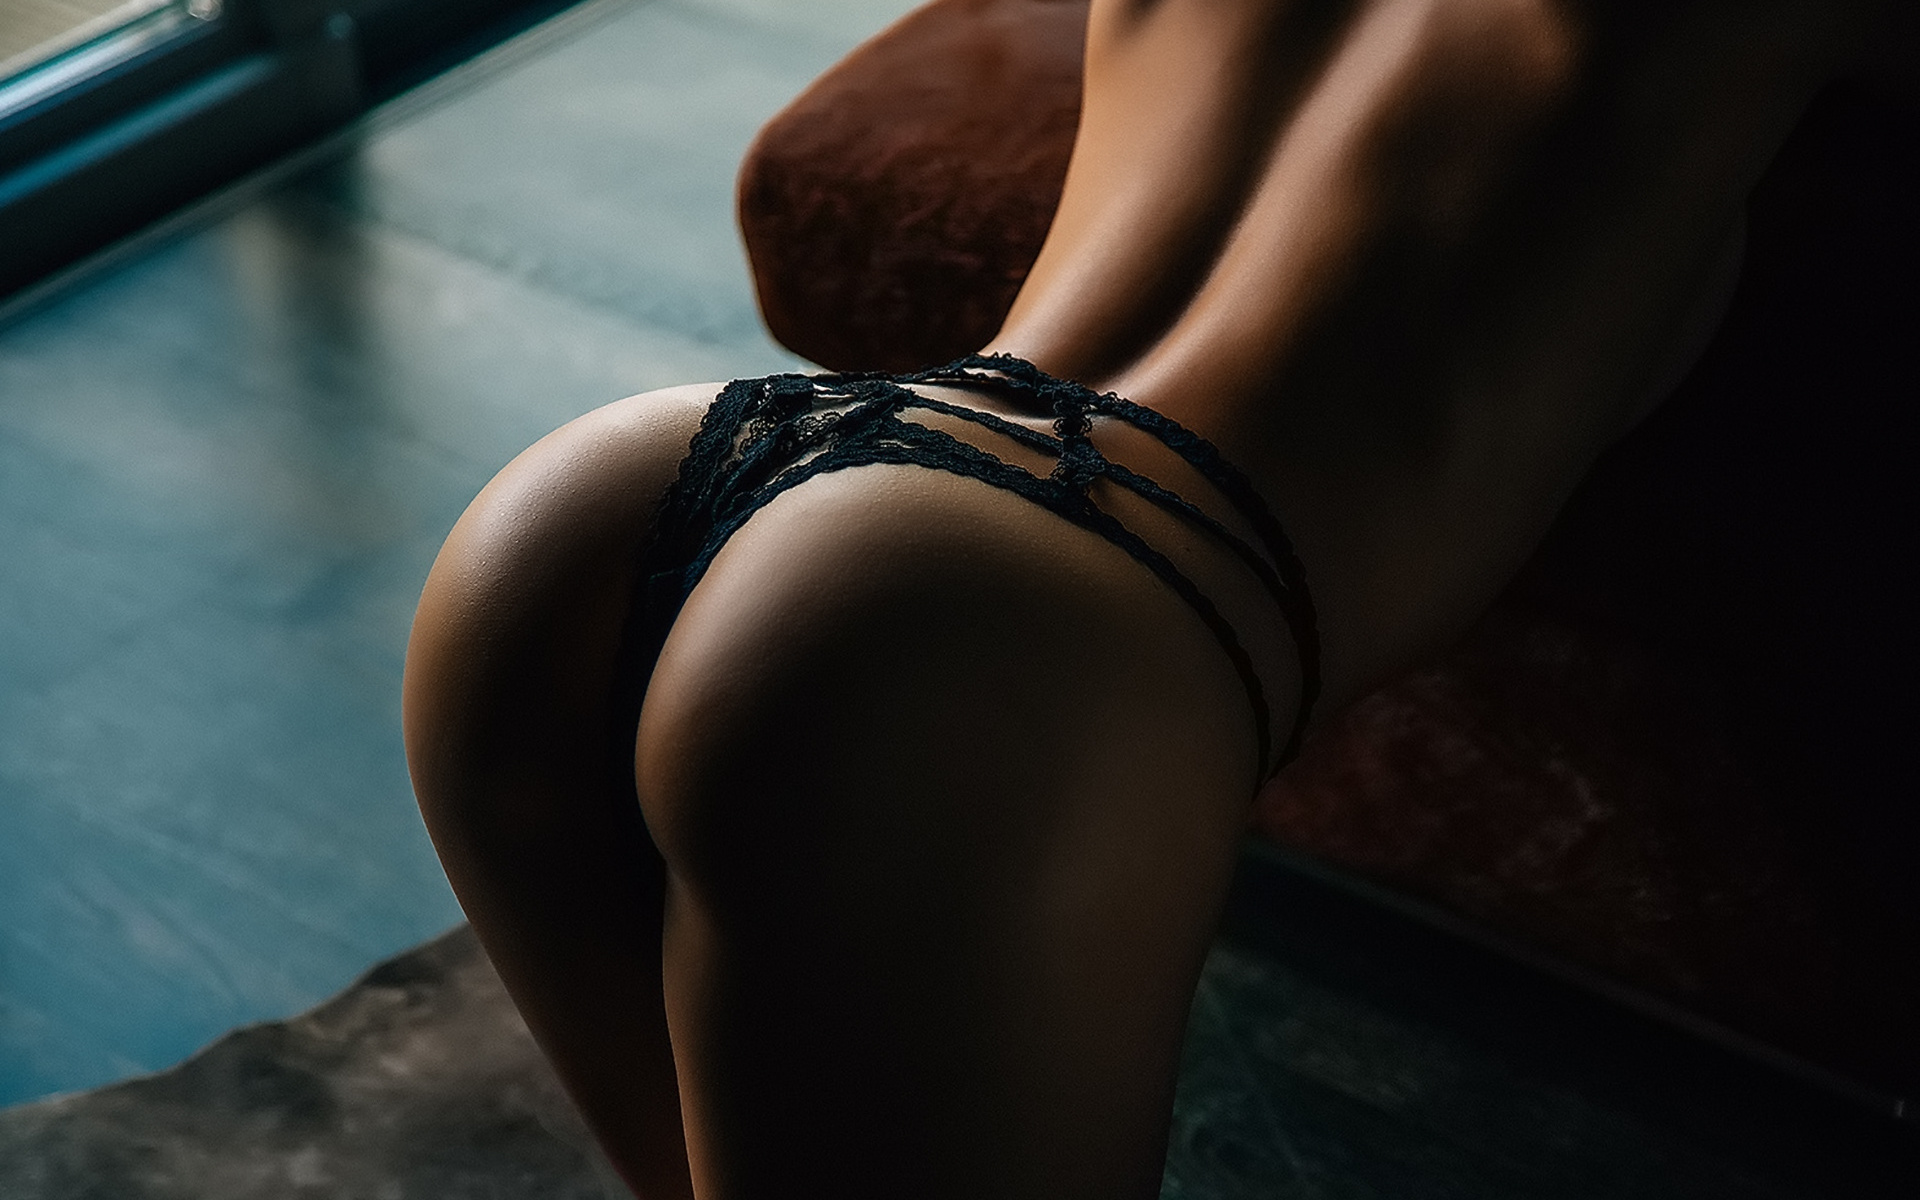 Sexy ass of young slim